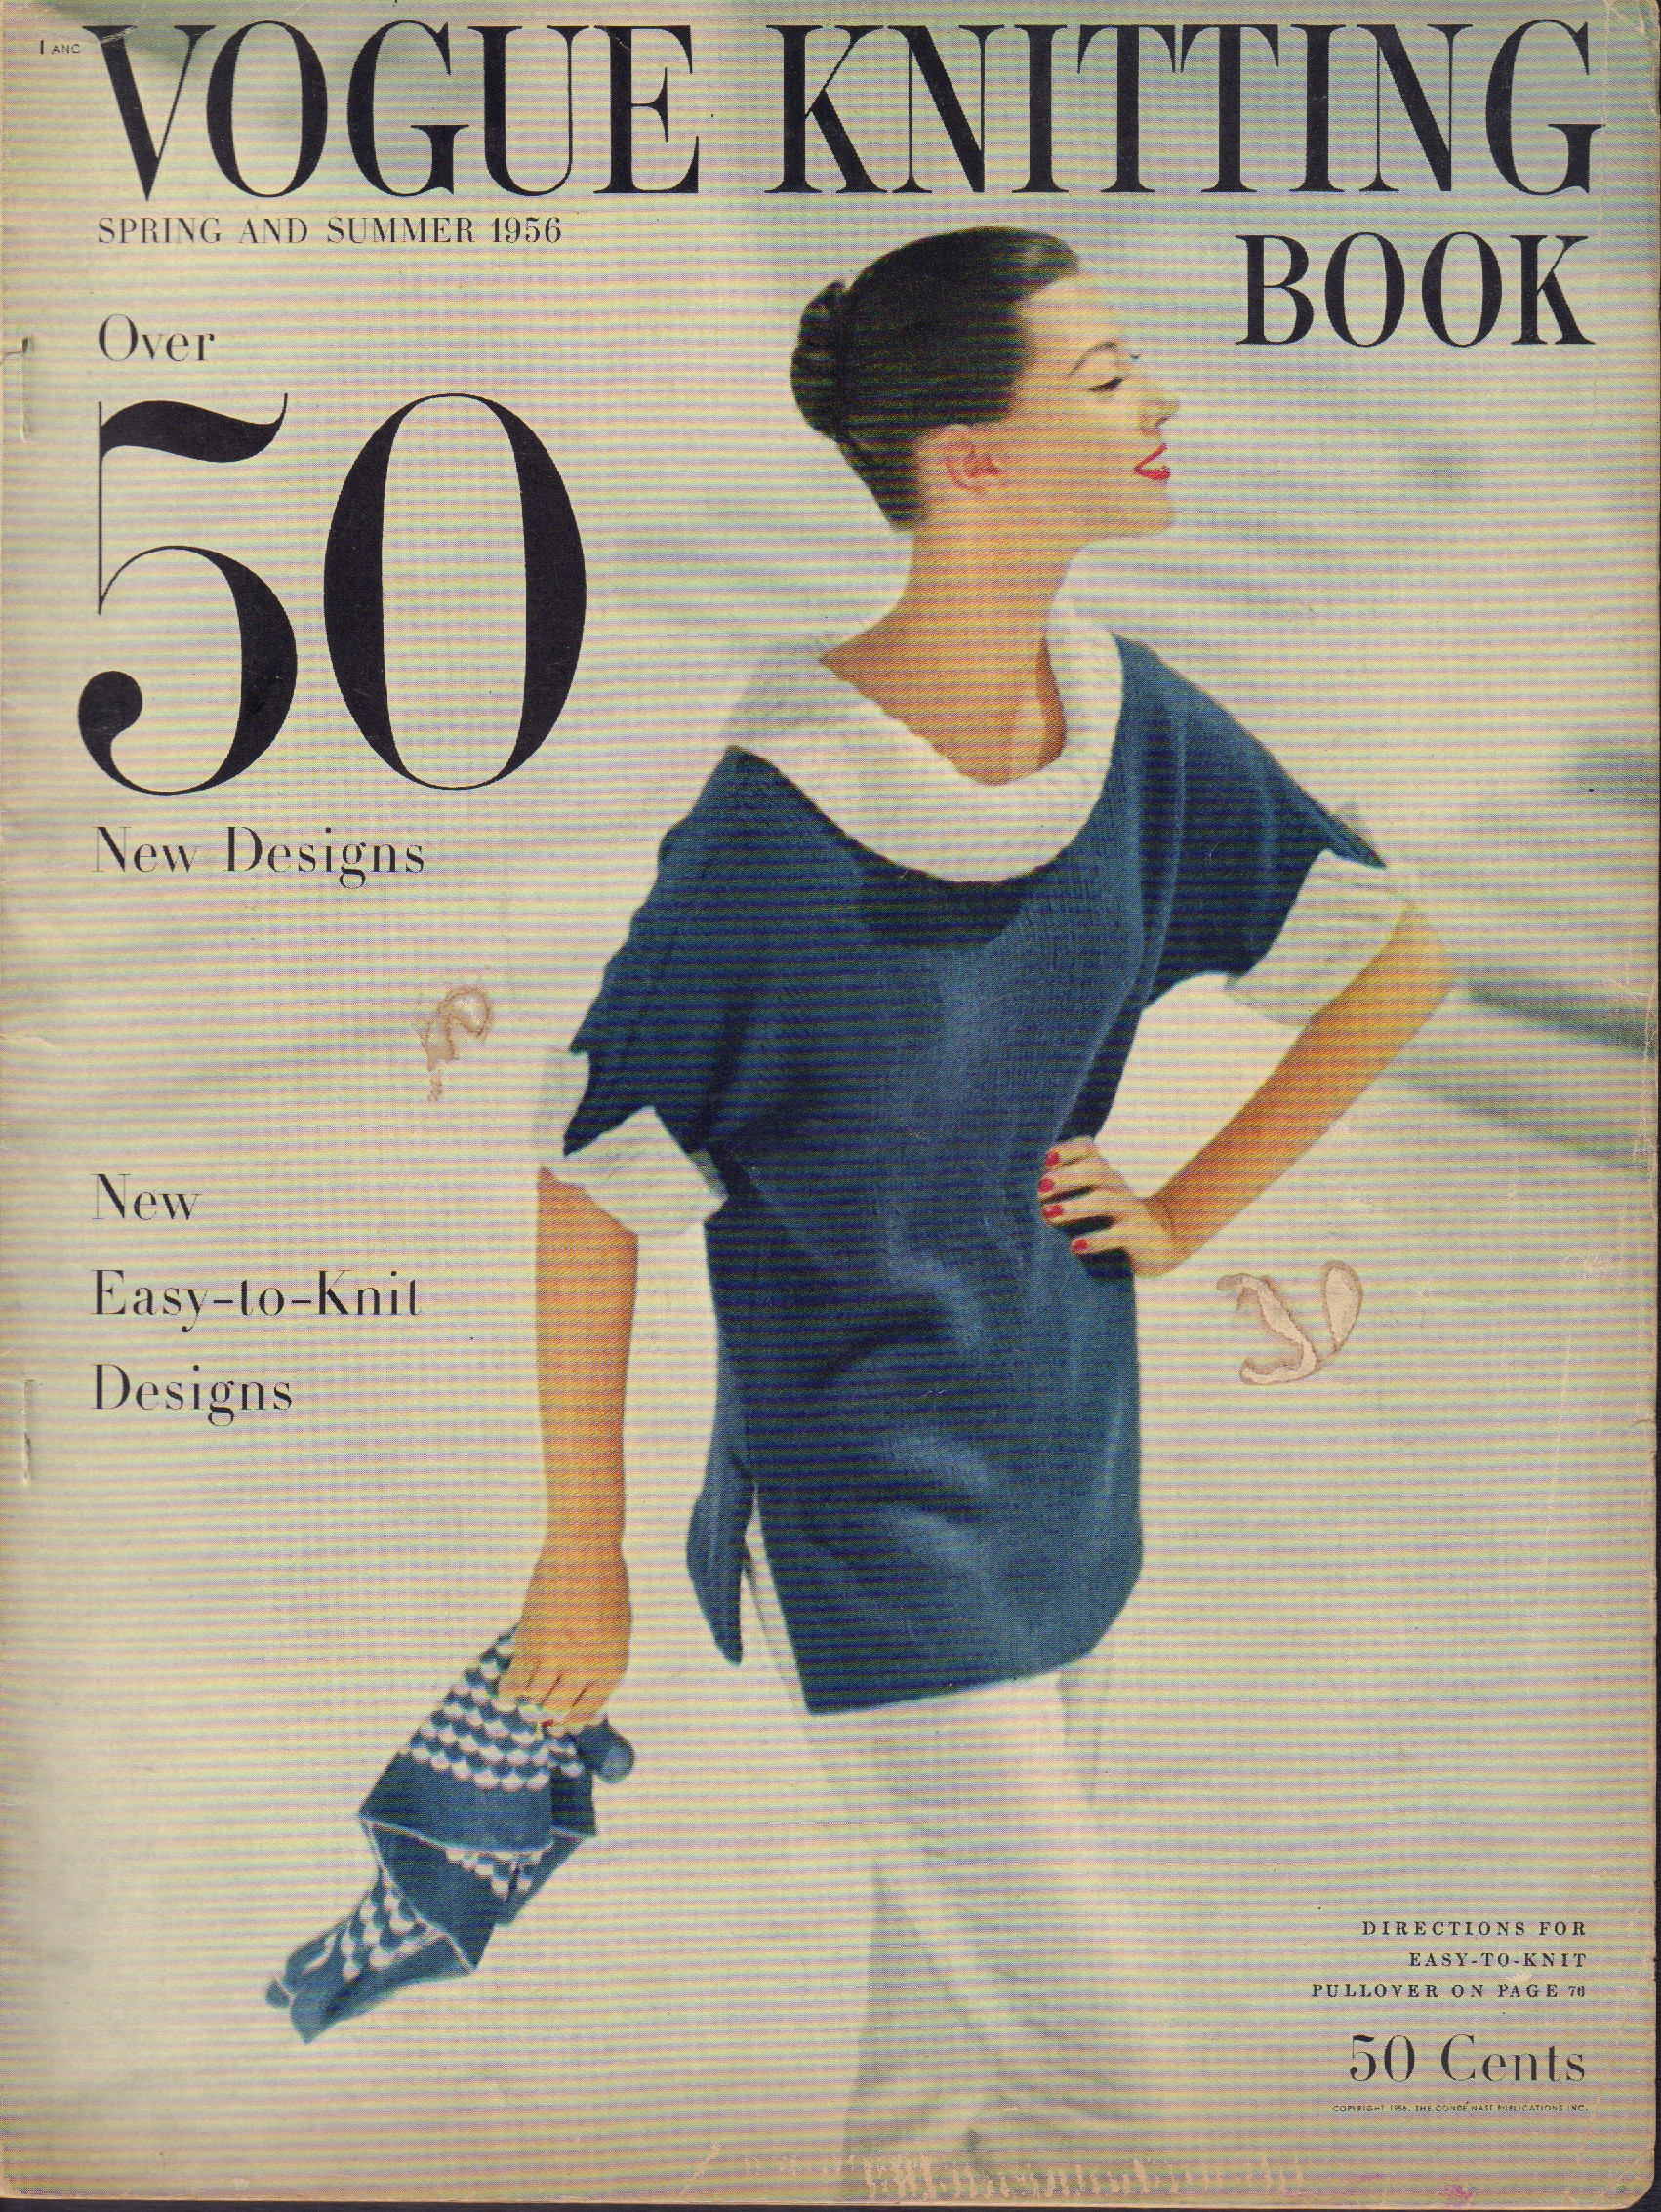 Image for Vogue Knitting Book Spring and Summer 1956